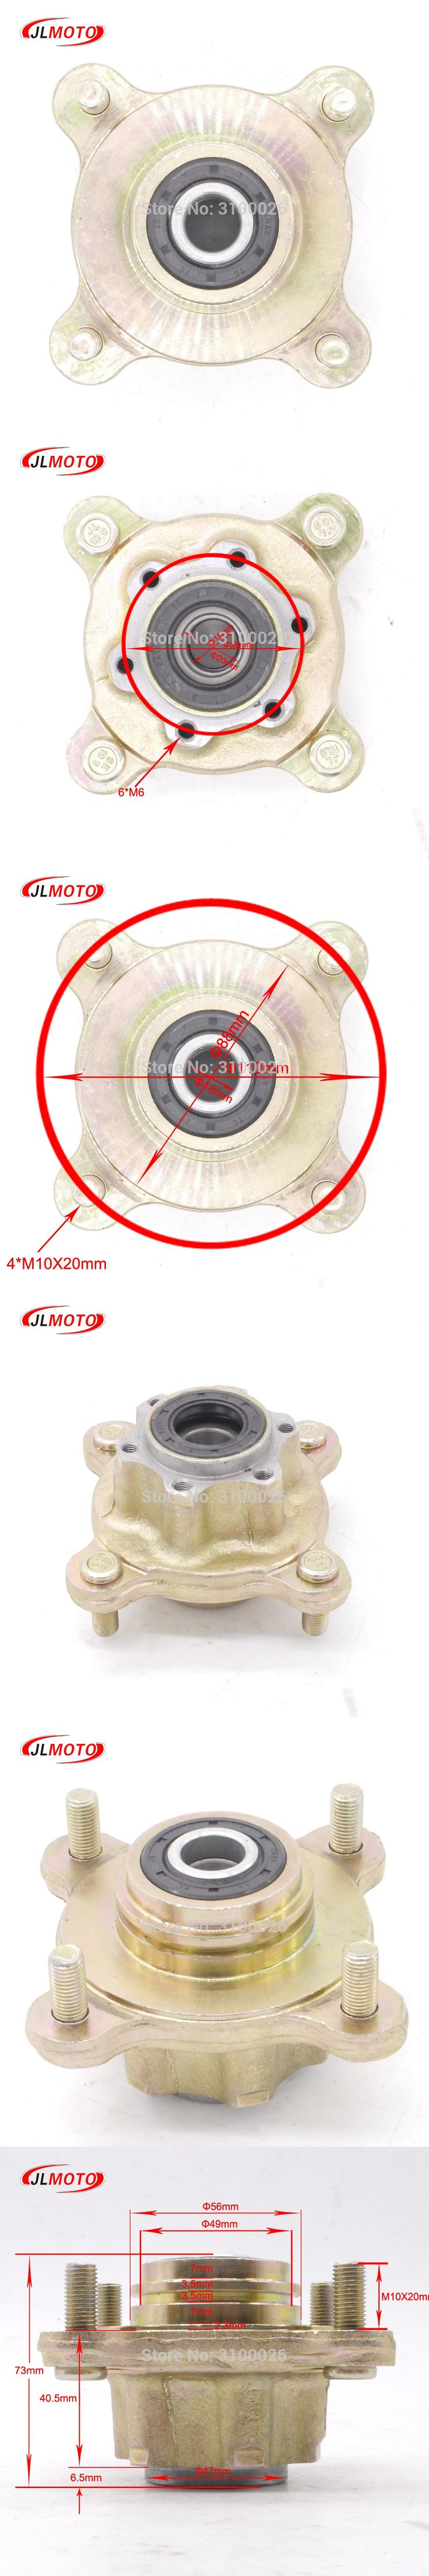 110mm*4 STUD M10 Front Brake Disc Wheel Hub Fit For China 150cc 200cc 250cc ATV UTV Buggy Go Golf Cart Quad Bike Parts